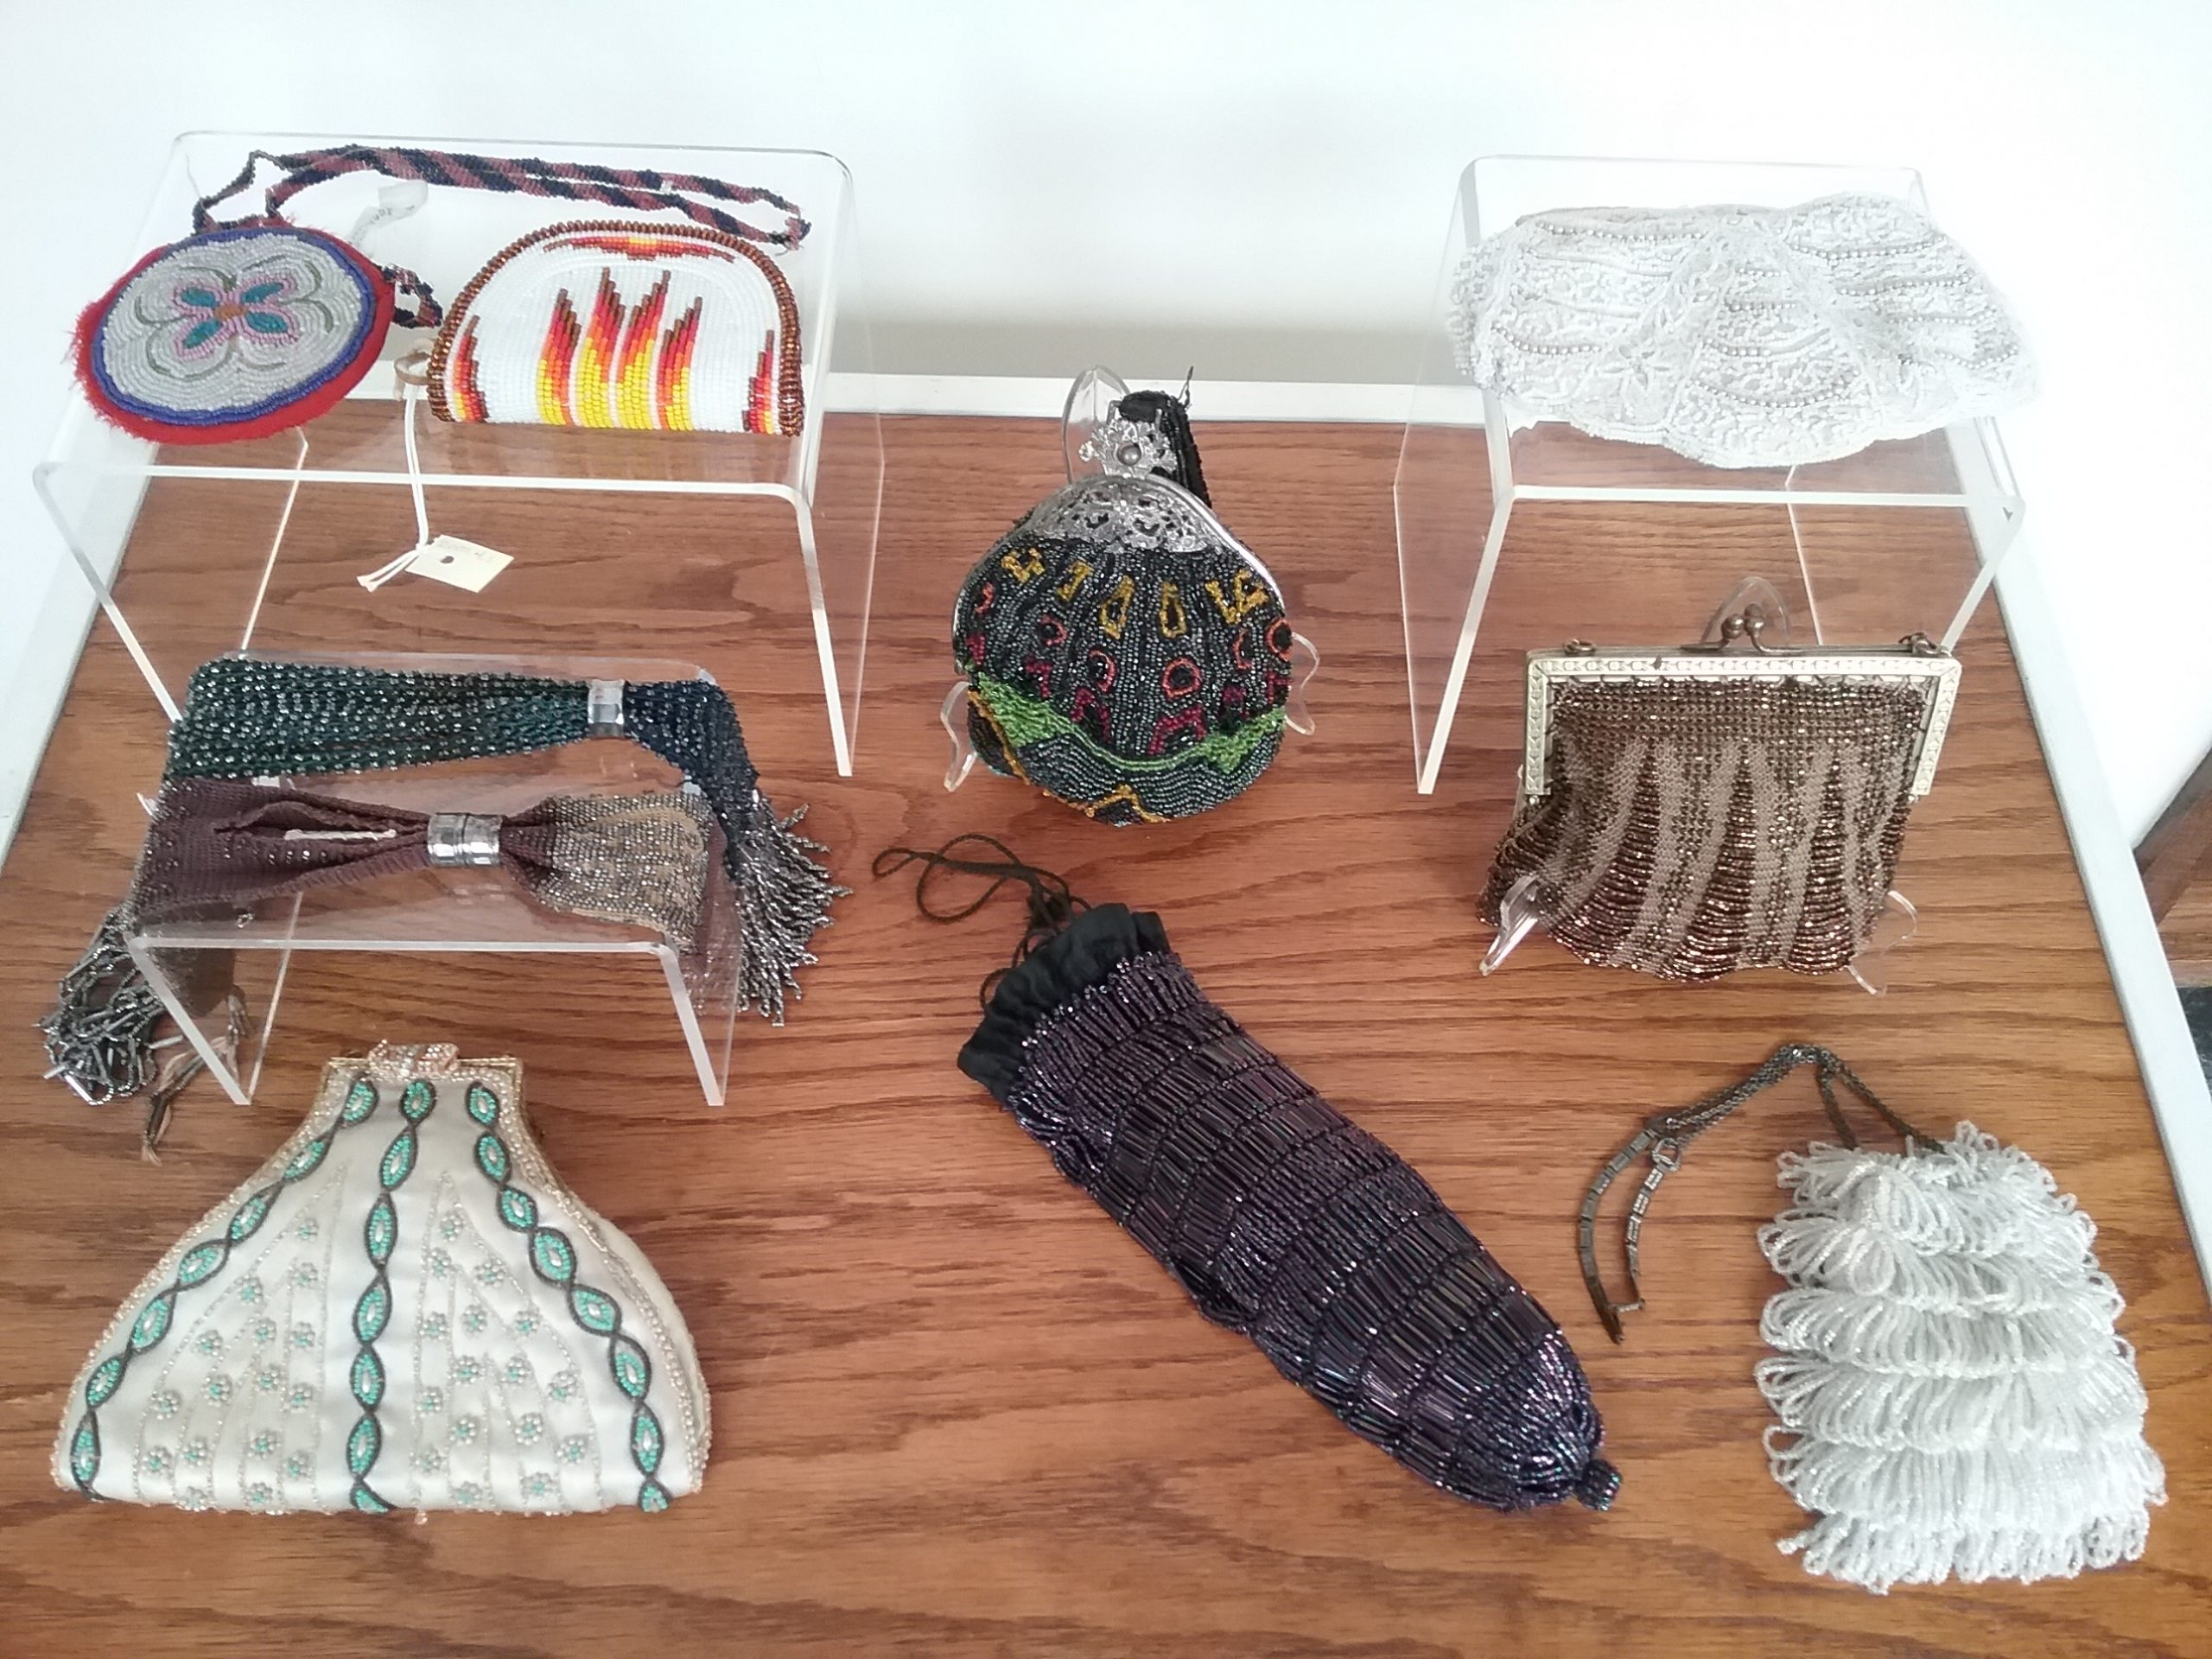 Case of beaded purses for BEAD Exhibit at The Charles A. Weyerhaeuser Memorial Museum, Little Falls, MN, 2020.